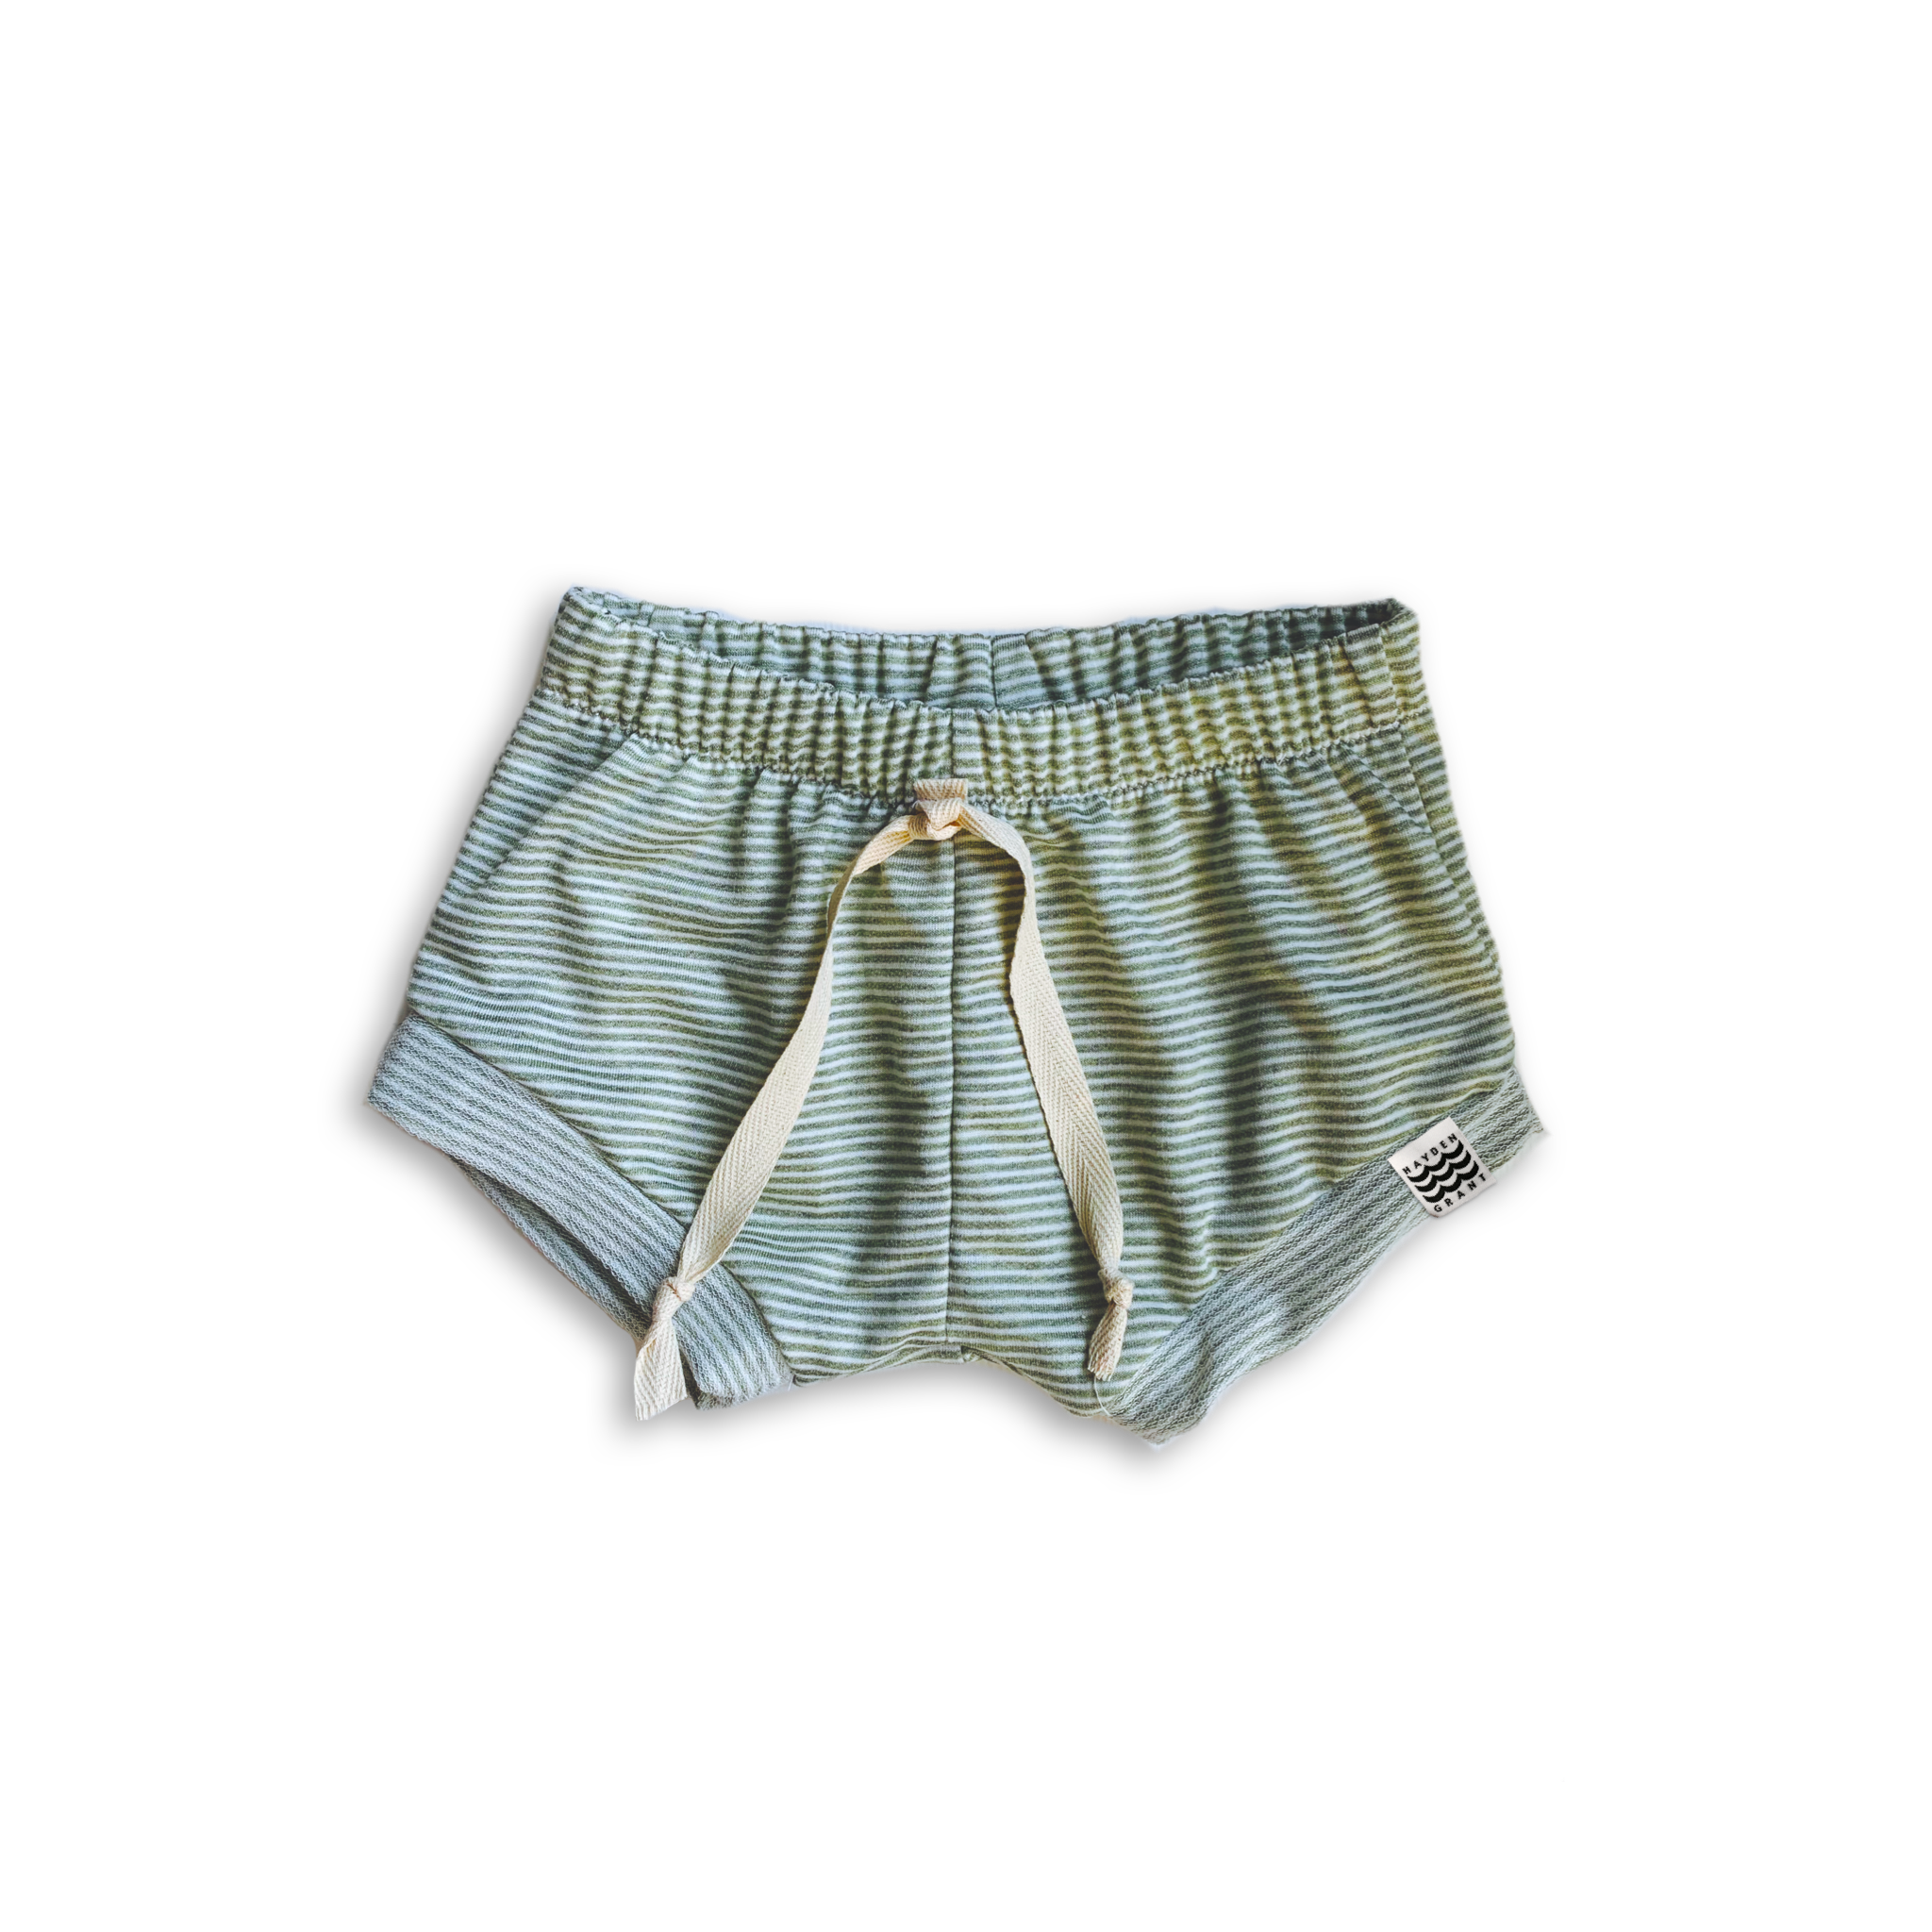 Classic Bummies in Green Tea Stripe